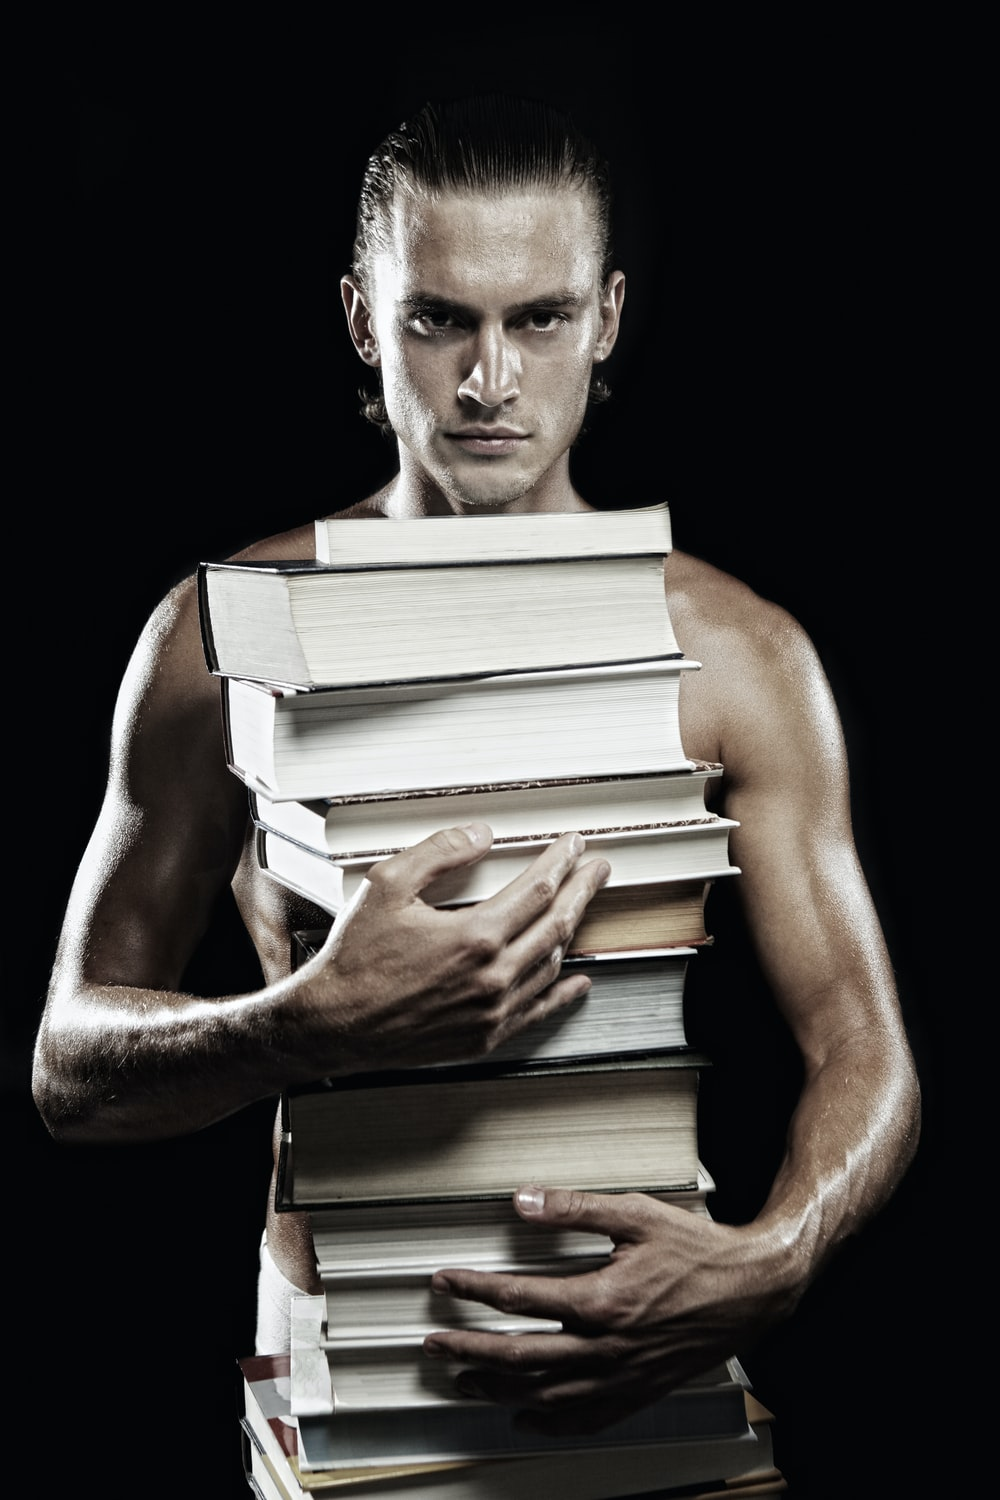 man holding books with black background